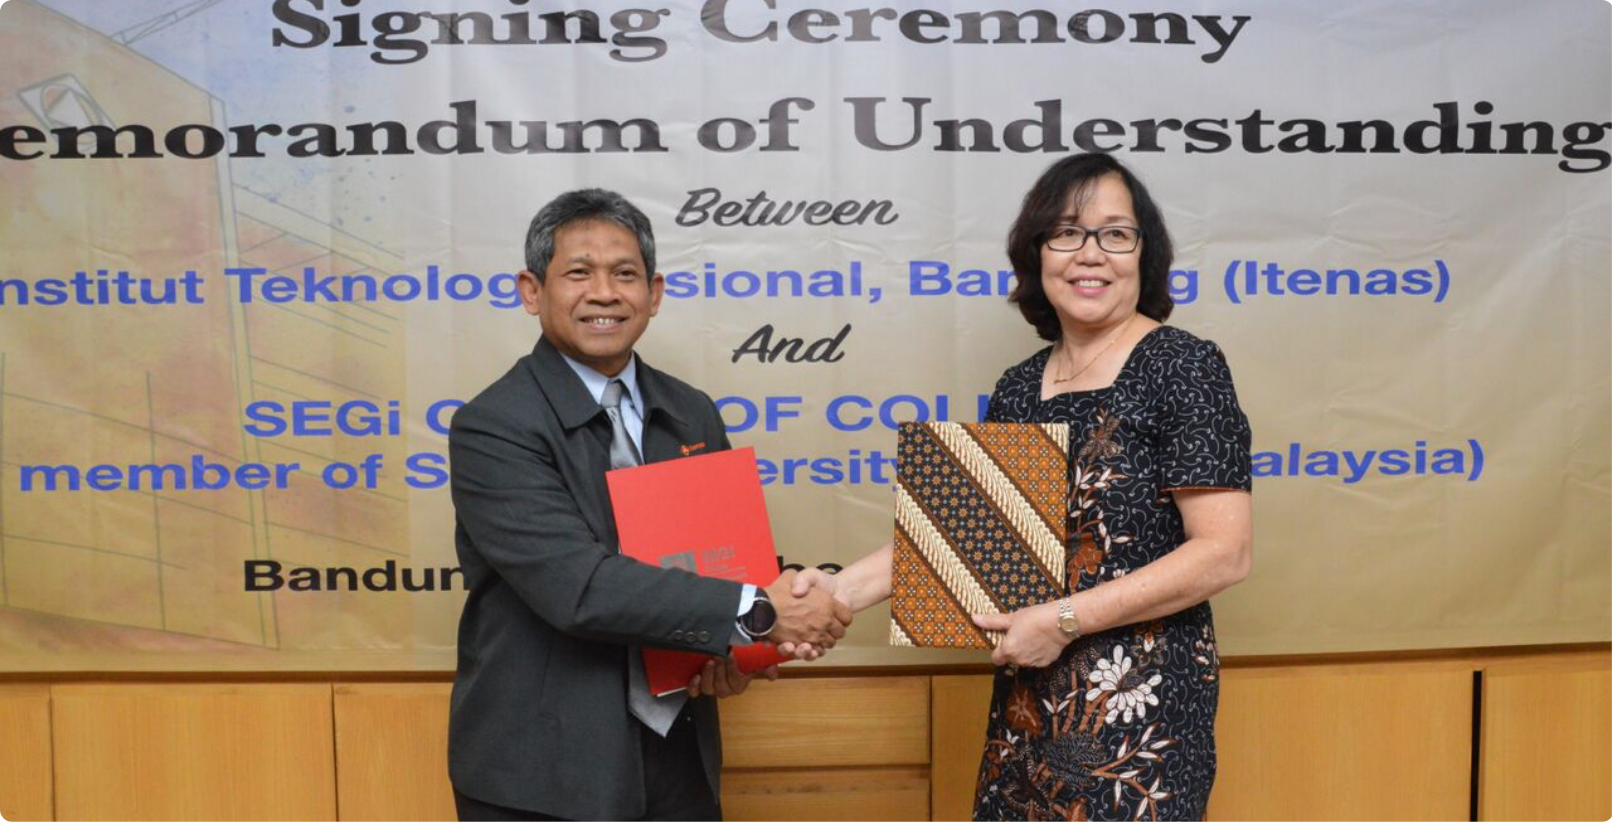 MoU signing ceremony between Itenas and SEGi Group of Colleges-Malaysia